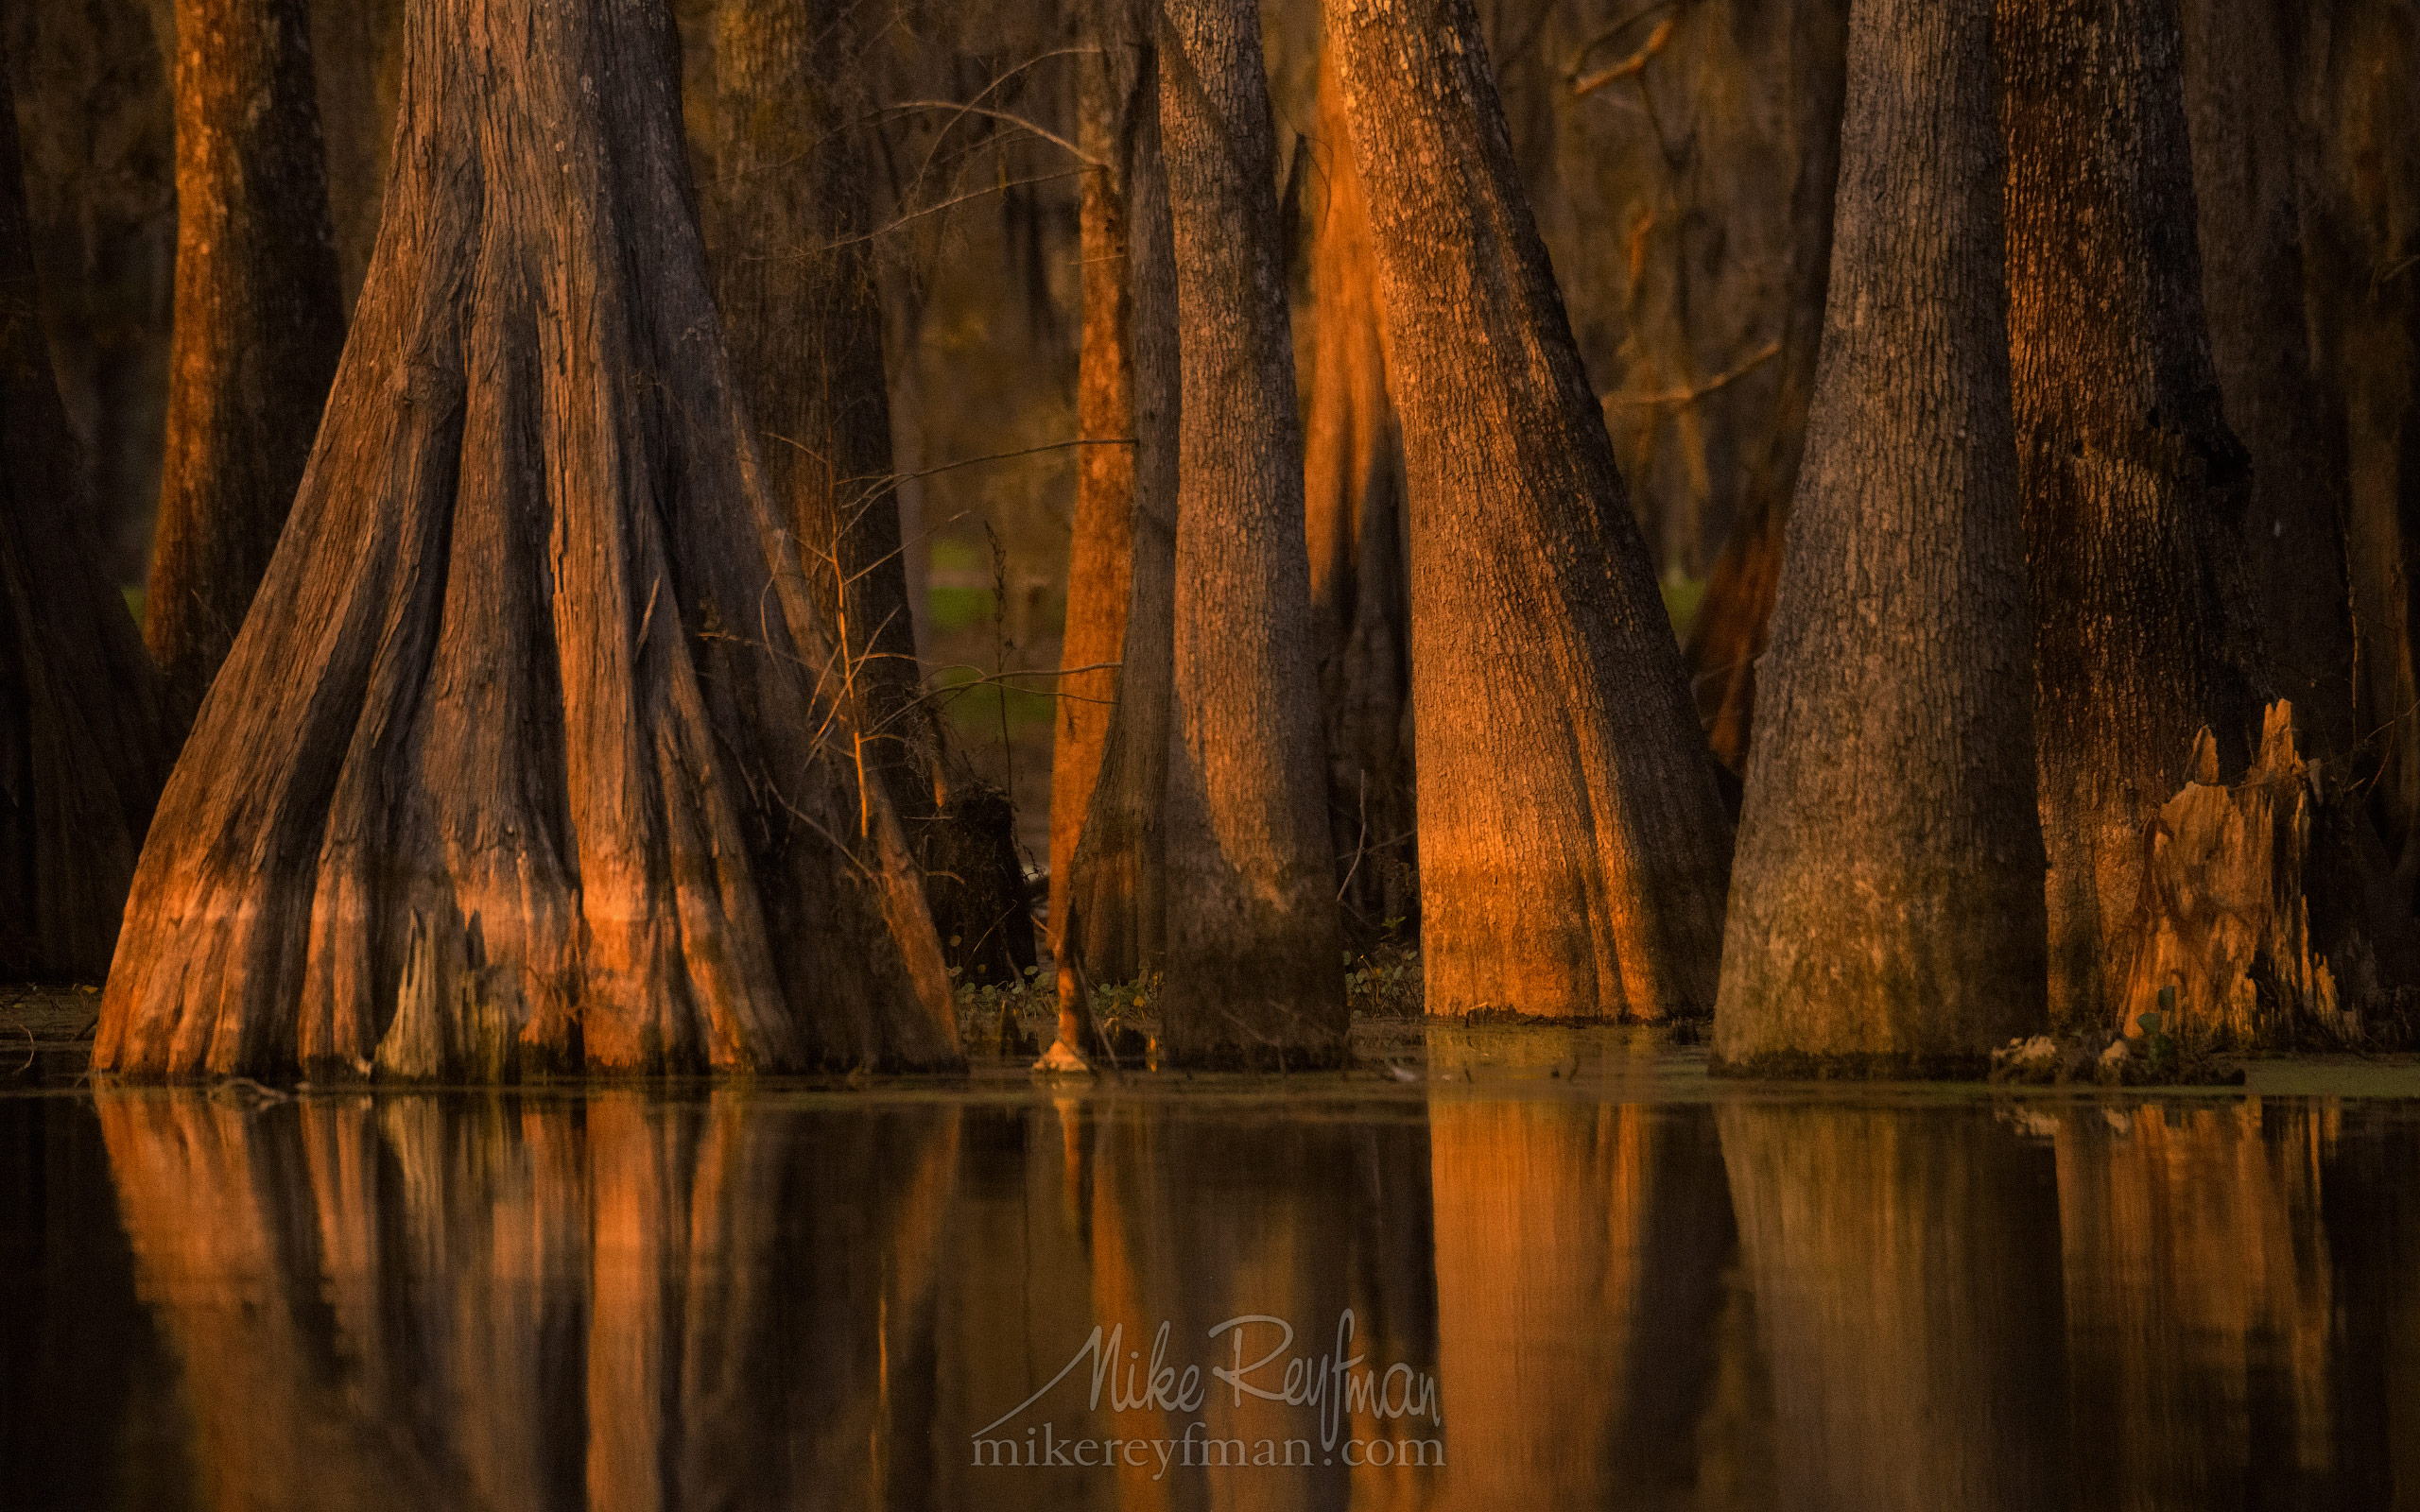 Buttressed trunks of Bald Cypress and Tupelo trees reflecting in the water. Lake Martin, Louisiana, US 075-LT1-50A2164.jpg - Bold Cypress and Tupelo Trees in the swamps of Atchafalaya River Basin. Caddo, Martin and Fousse Lakes. Texas/Louisiana, USA. - Mike Reyfman Photography